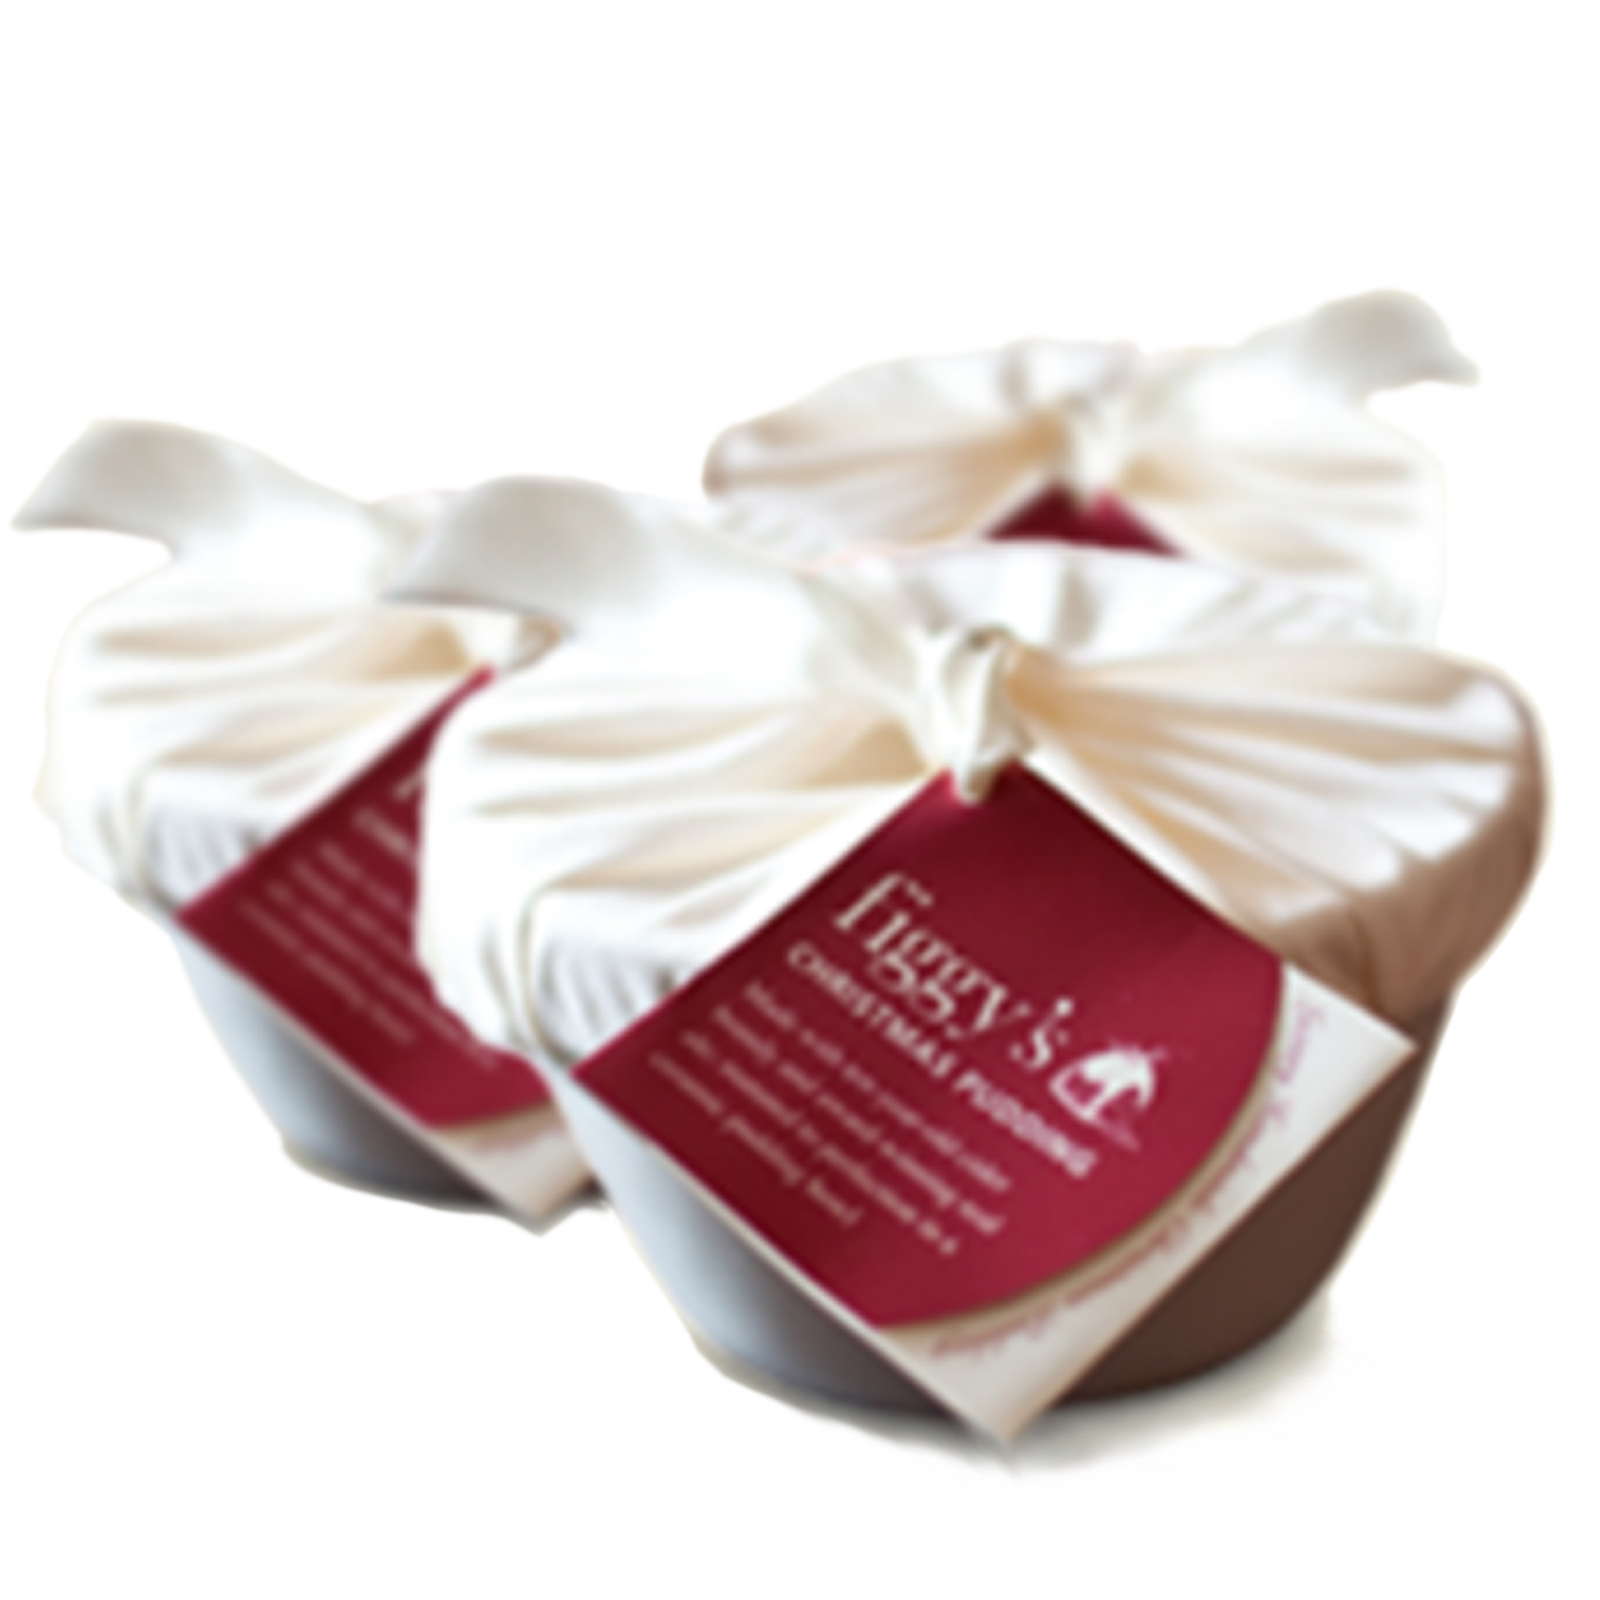 Figgy's Christmas Pudding  - Small 350g in Ceramic Bowl